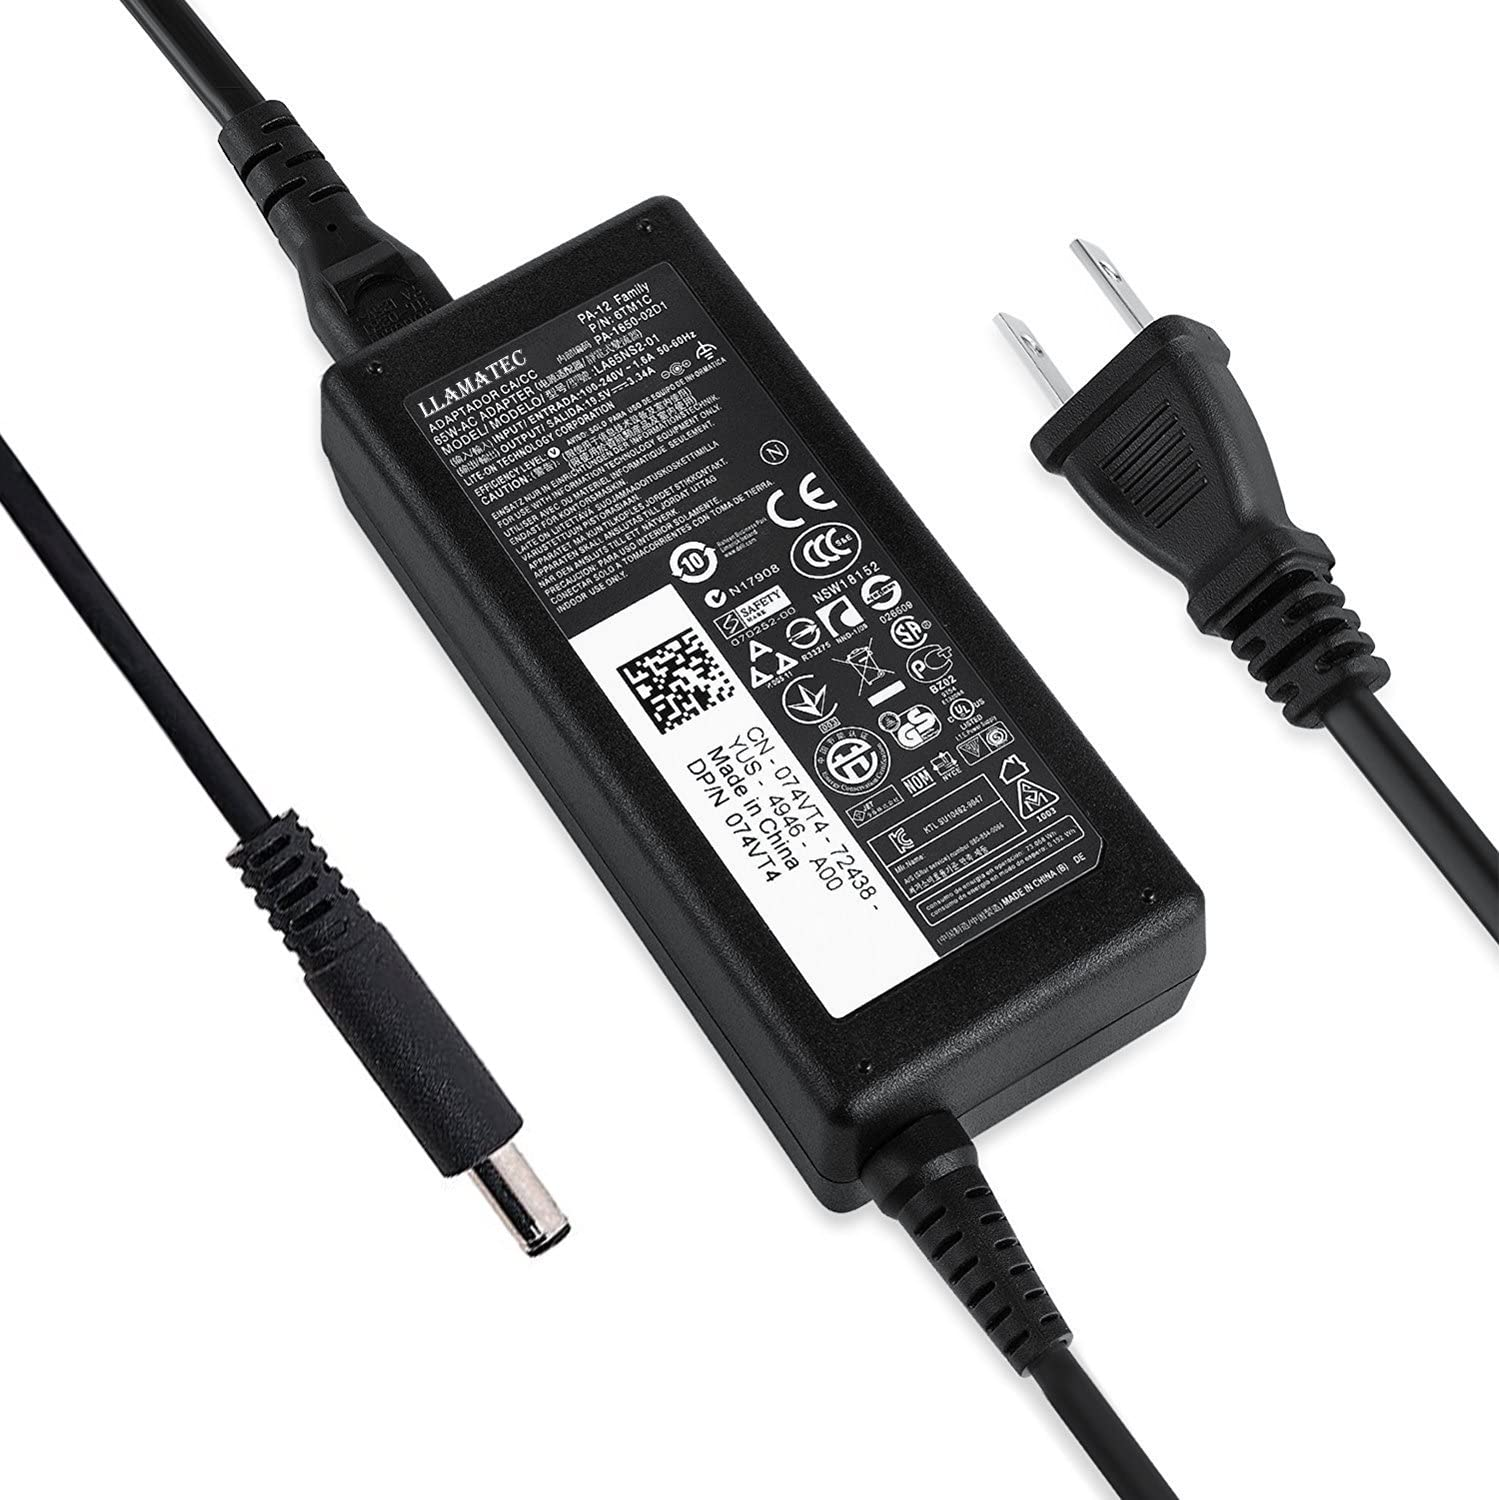 AC Adapter for Dell Inspiron 15 3000 5000 Series 15 3551 3552 3558 5555 5567 5558 5559 5755 5758 7558 7568 7569 7579 Laptop 65W Power Supply Adapter Cord